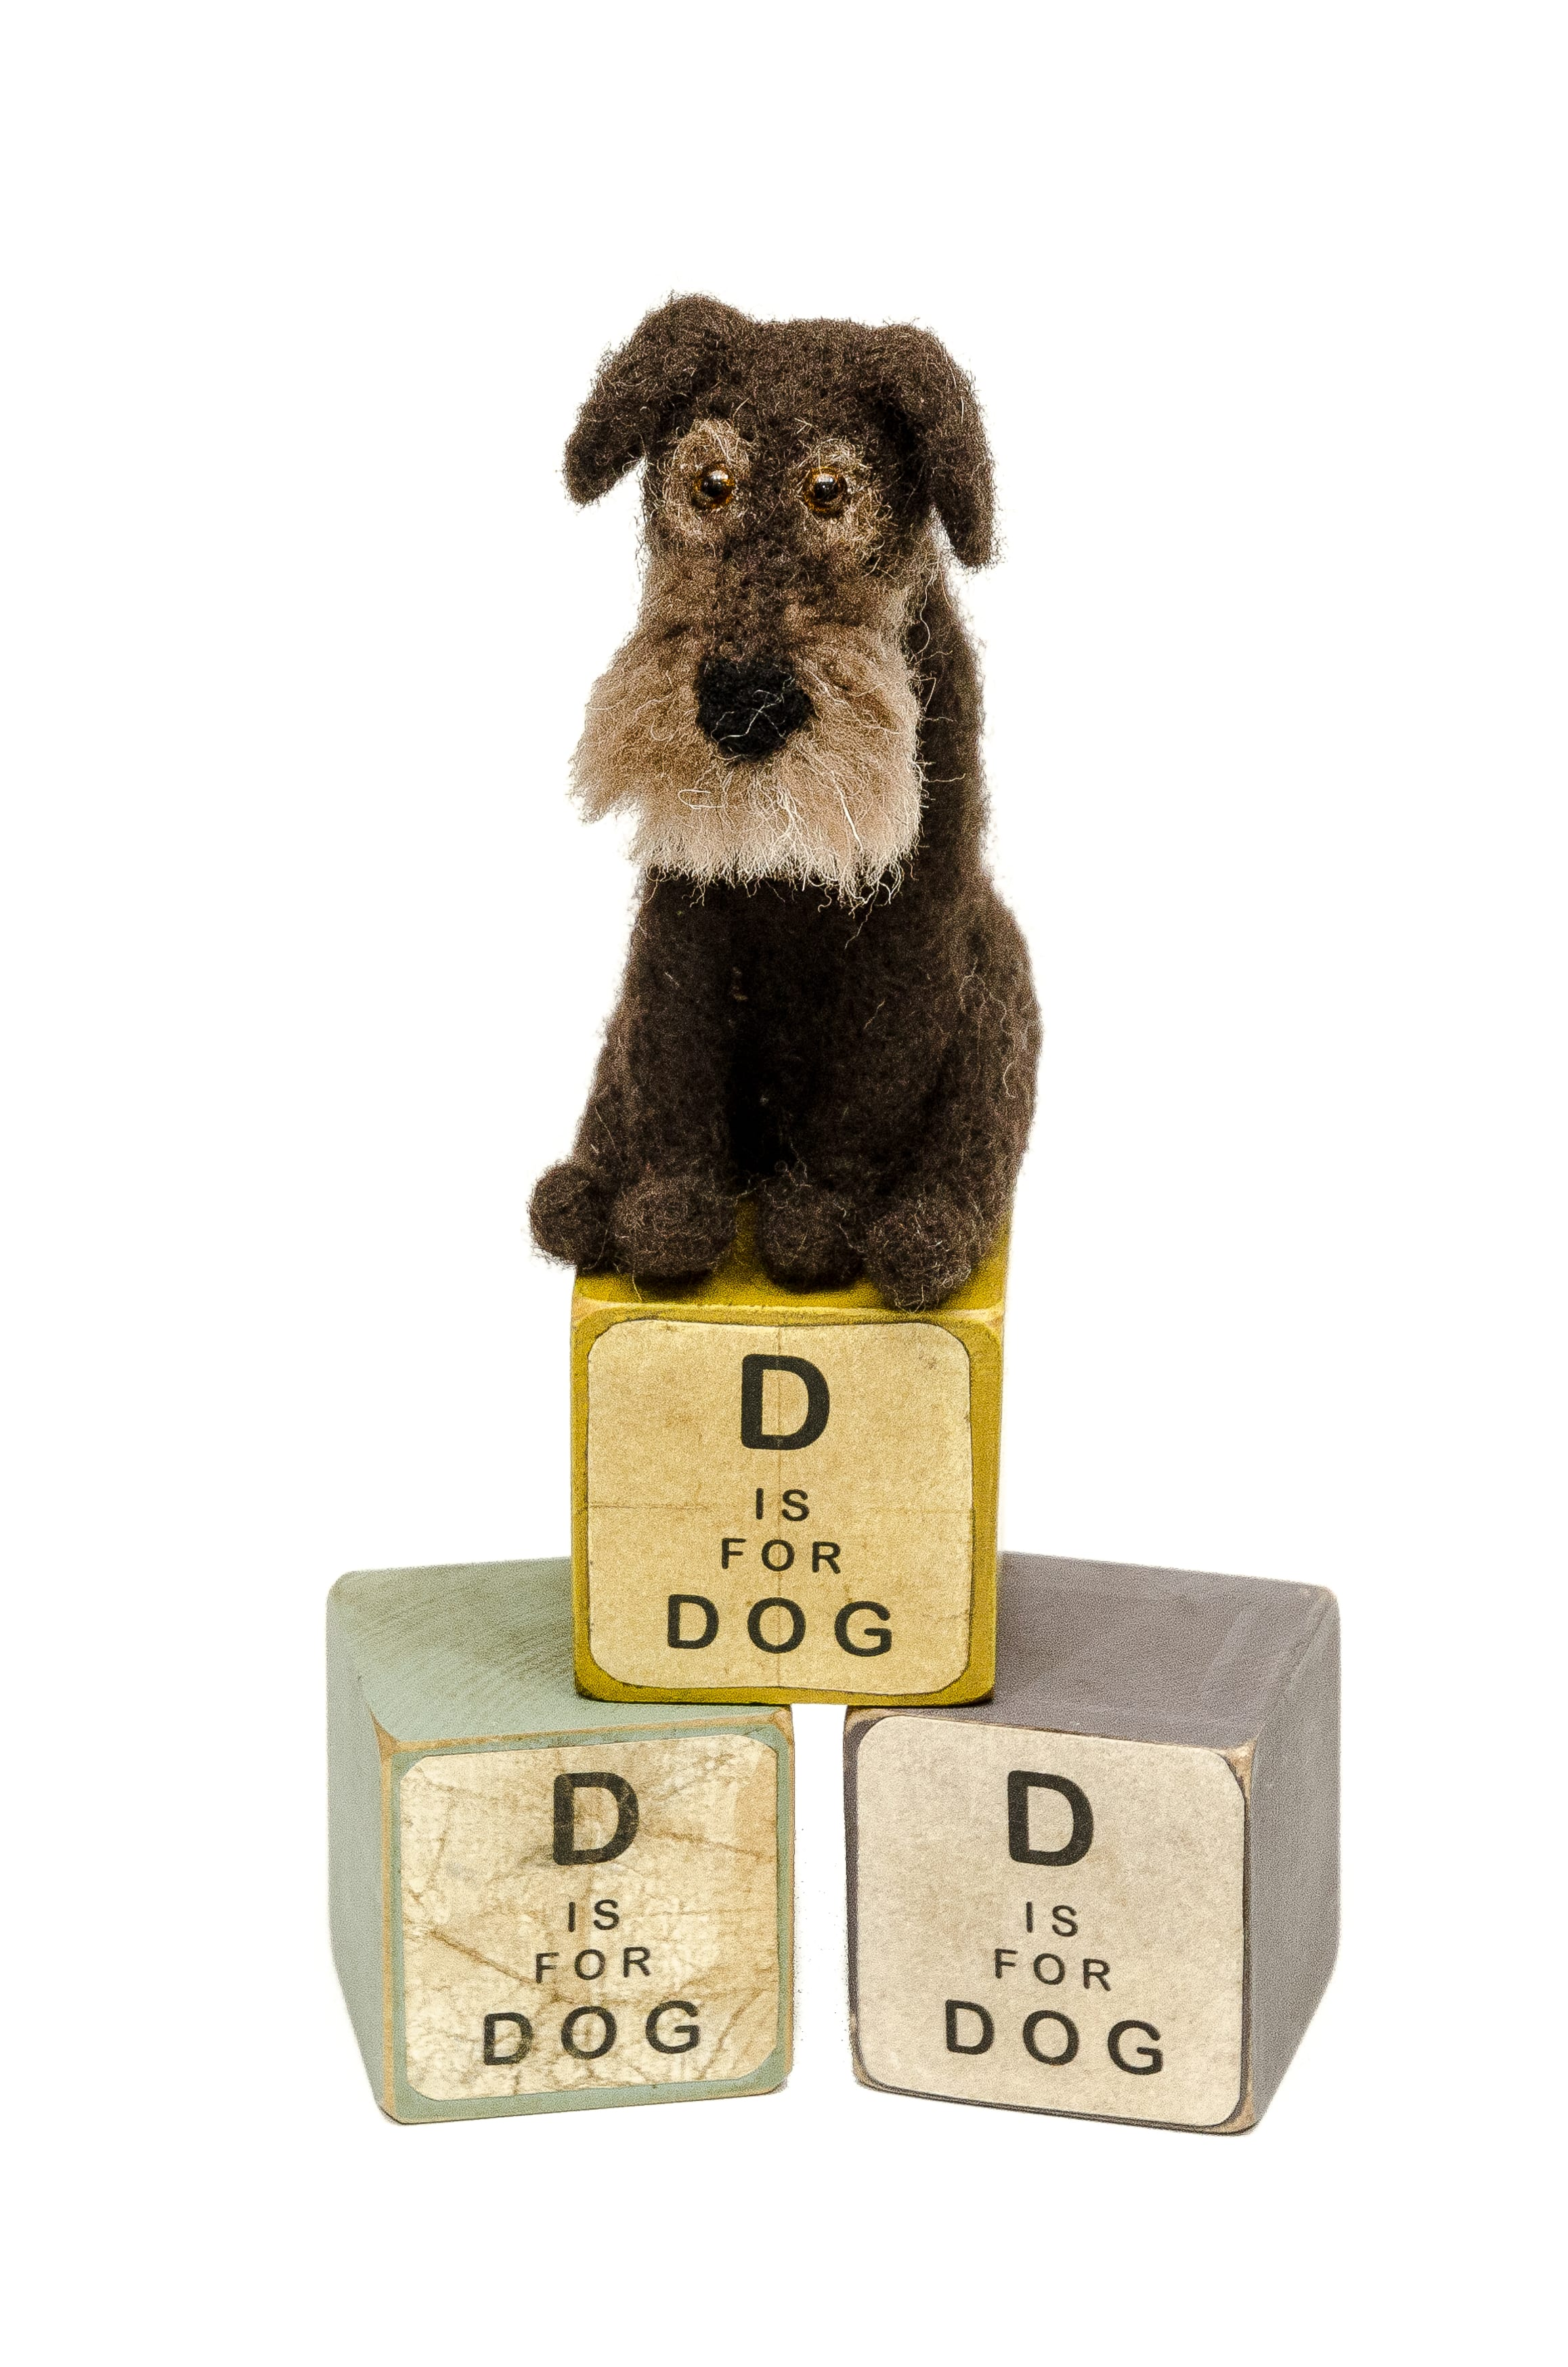 Image shows a small felted terrier type dog sat on top of 3 vintage wooden blocks with D for Dog written on them